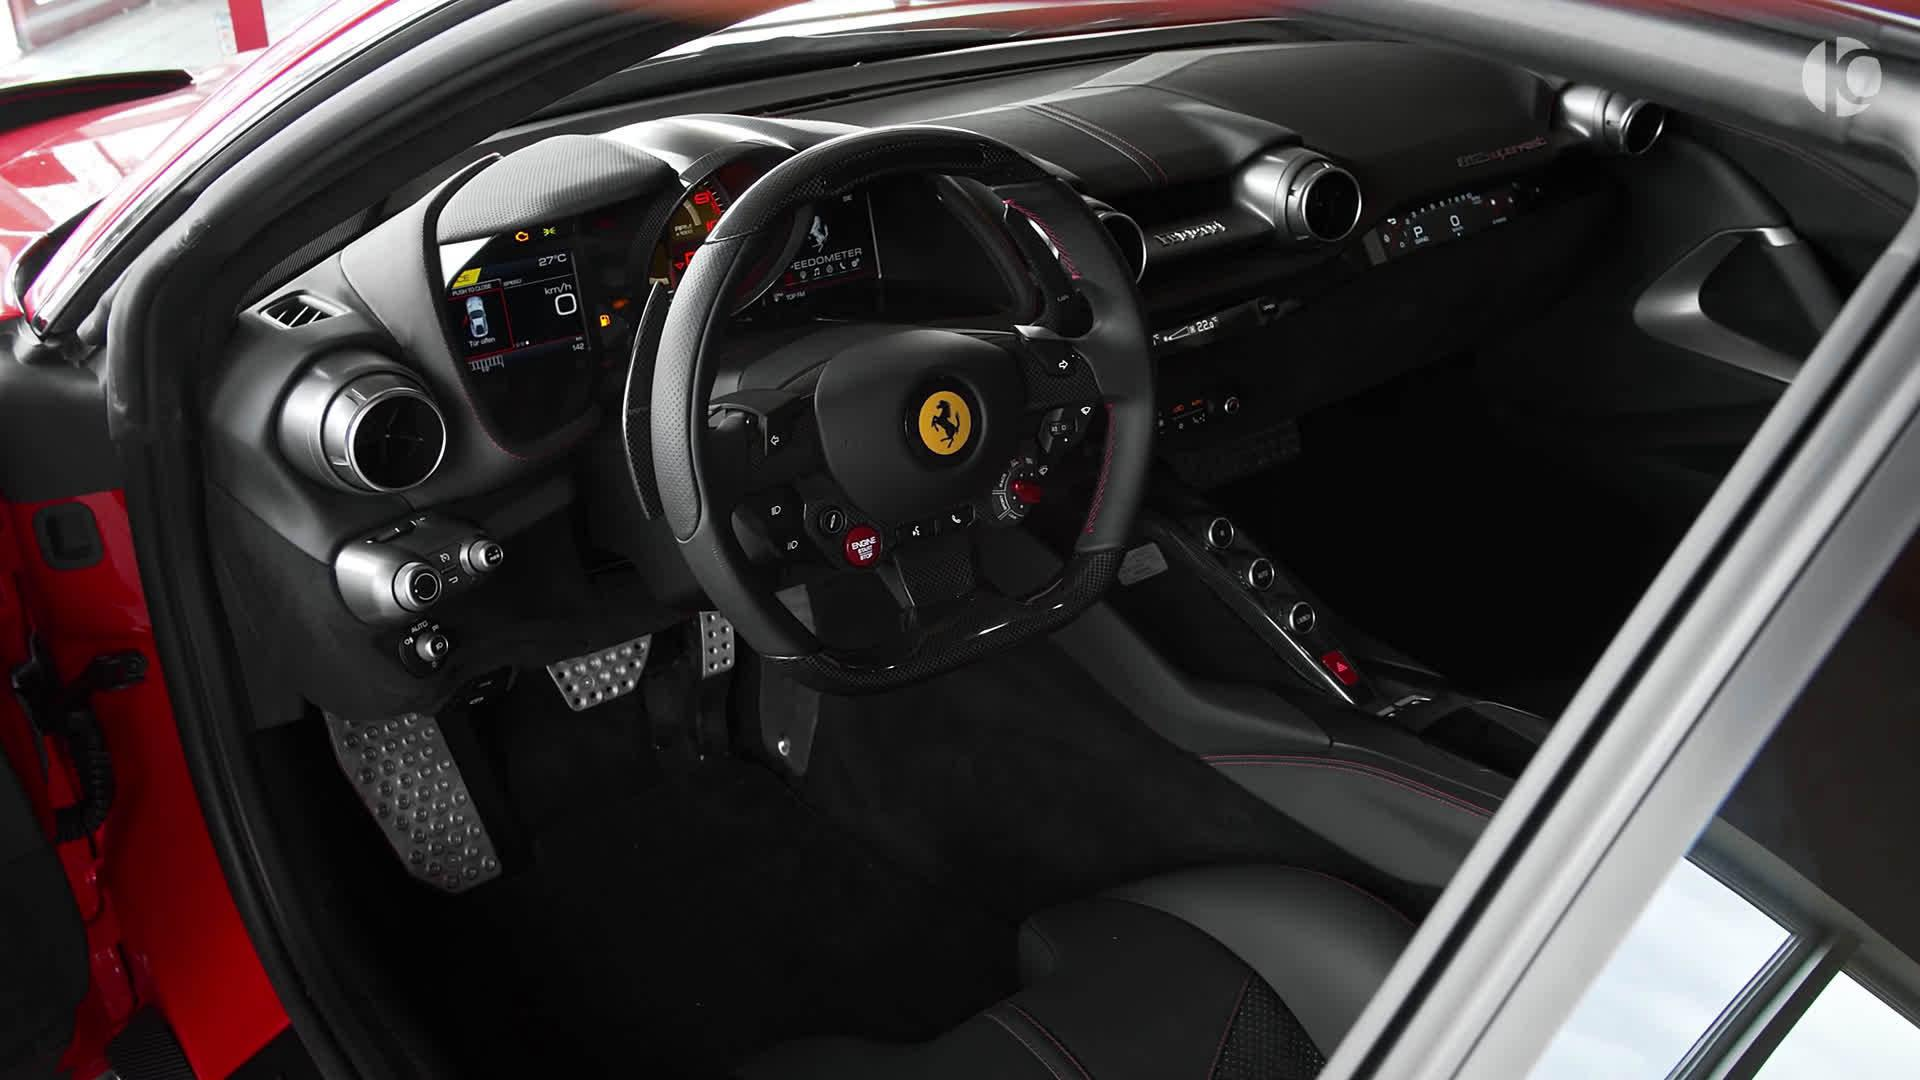 2020 Novitec N Largo Ferrari 812 Superfast-声音…………